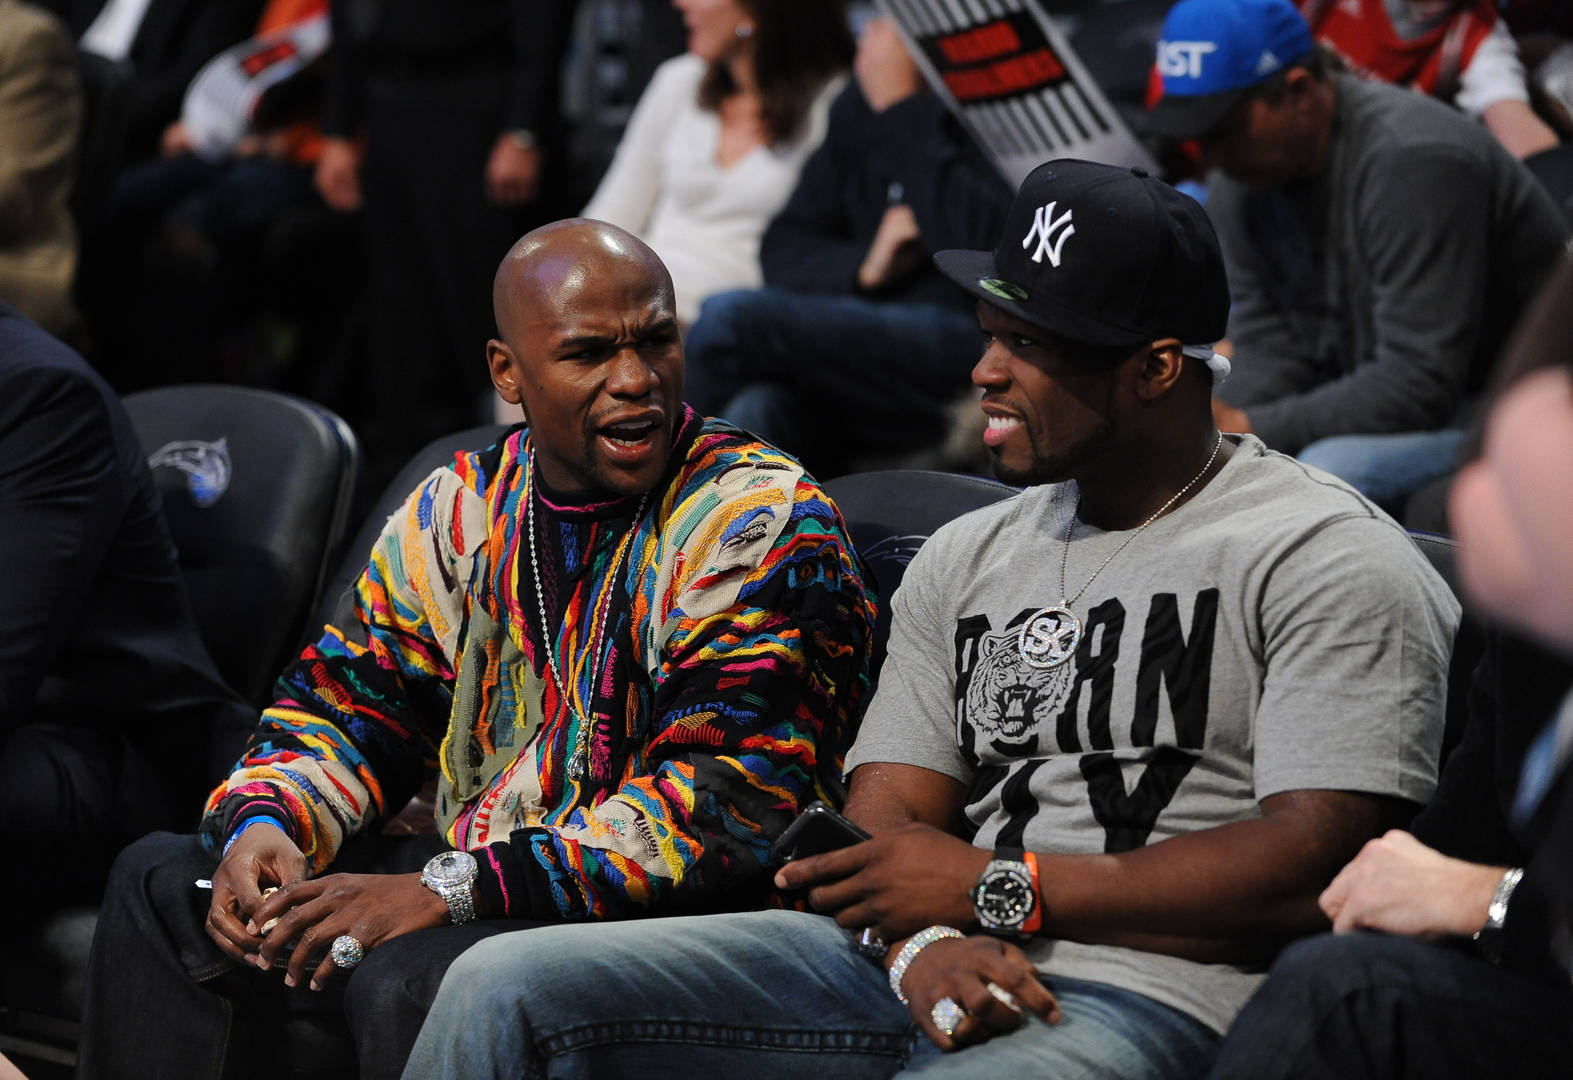 Watch: 50 Cent Trolls Floyd Mayweather About Owing Him Money With Fan-Made Video